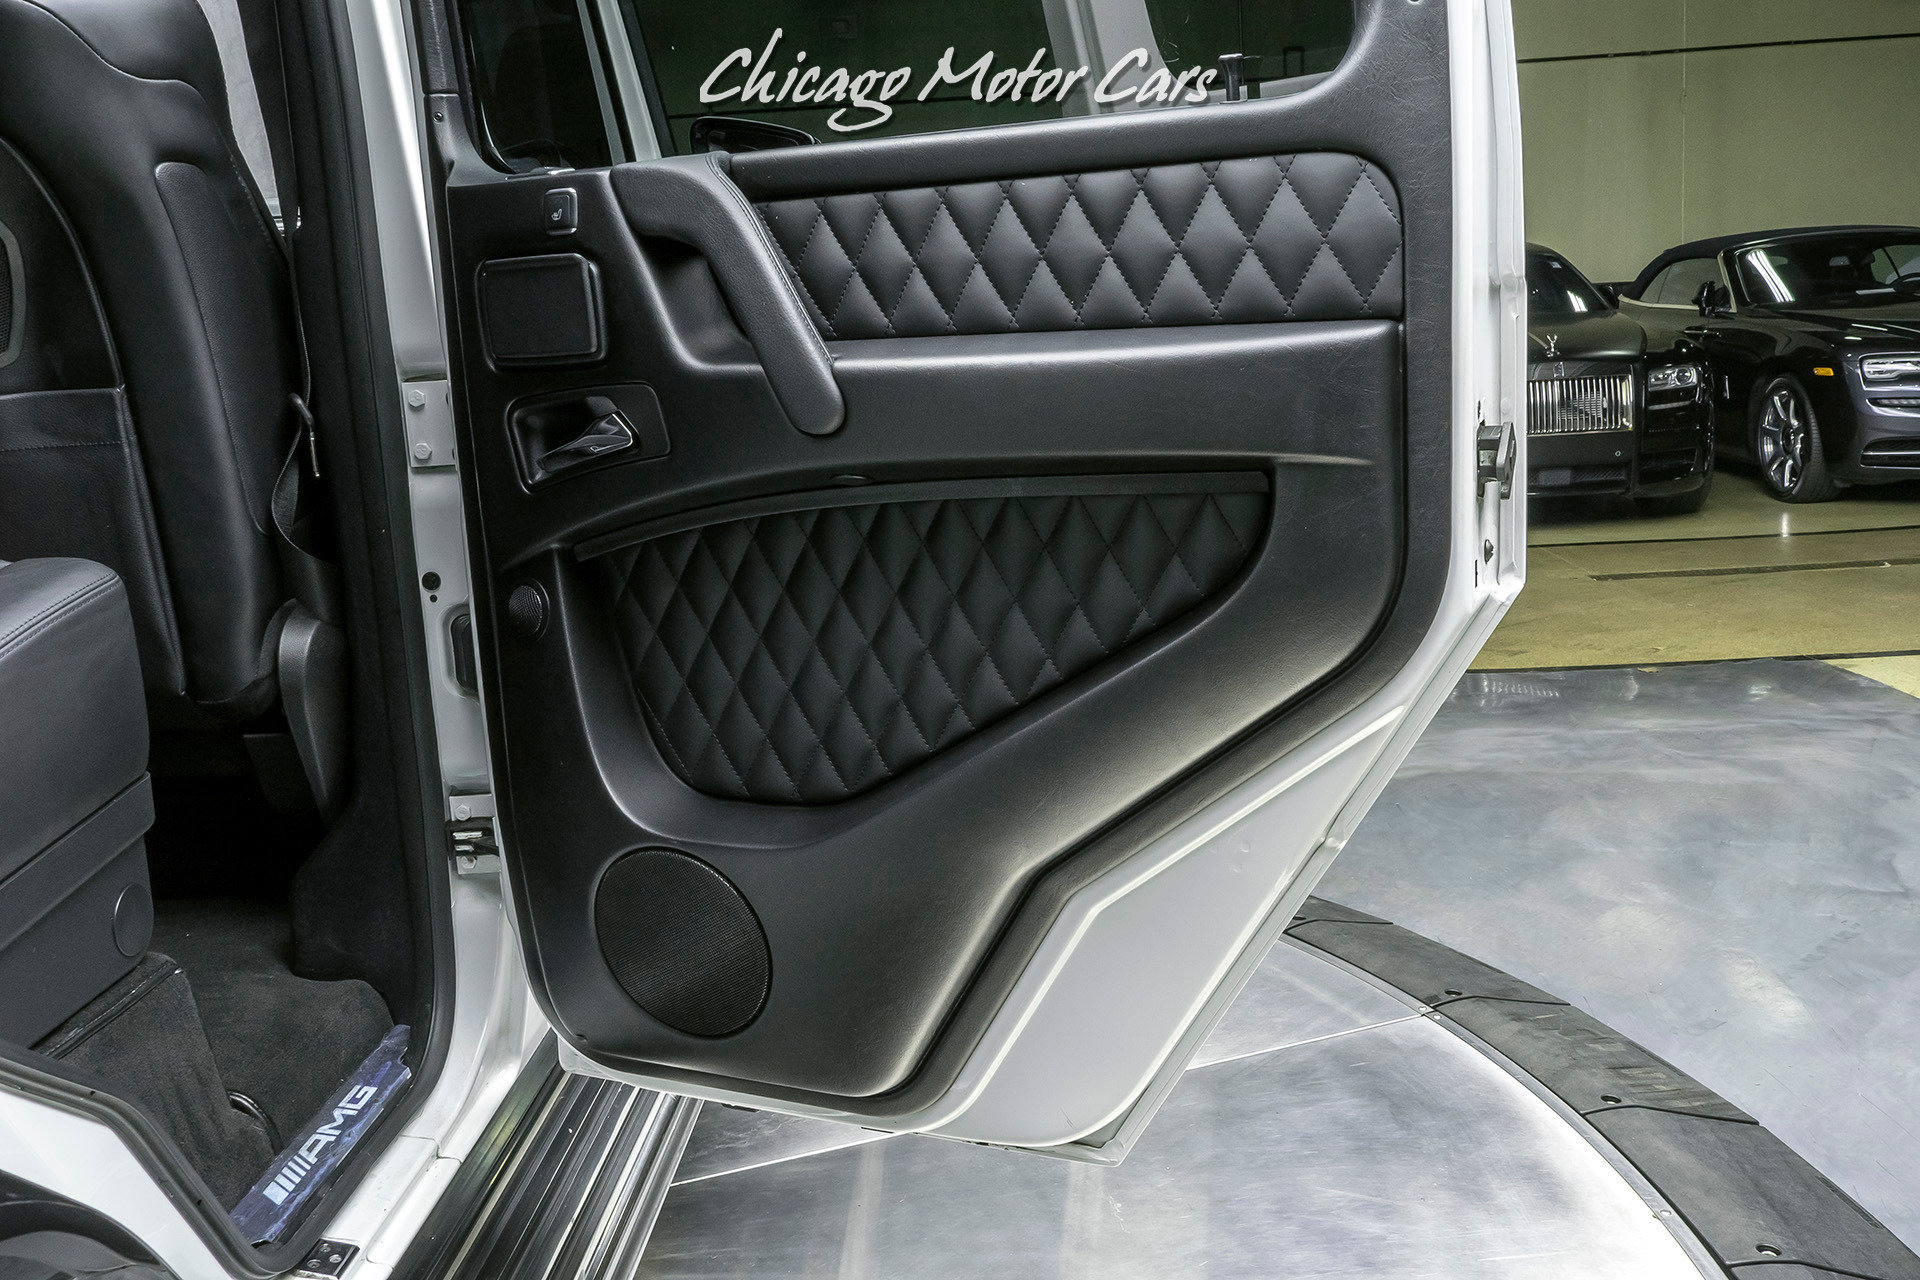 Used-2017-Mercedes-Benz-G63-AMG-SUV-EXCLUSIVE-DIAMOND-STITCHED-INTERIOR